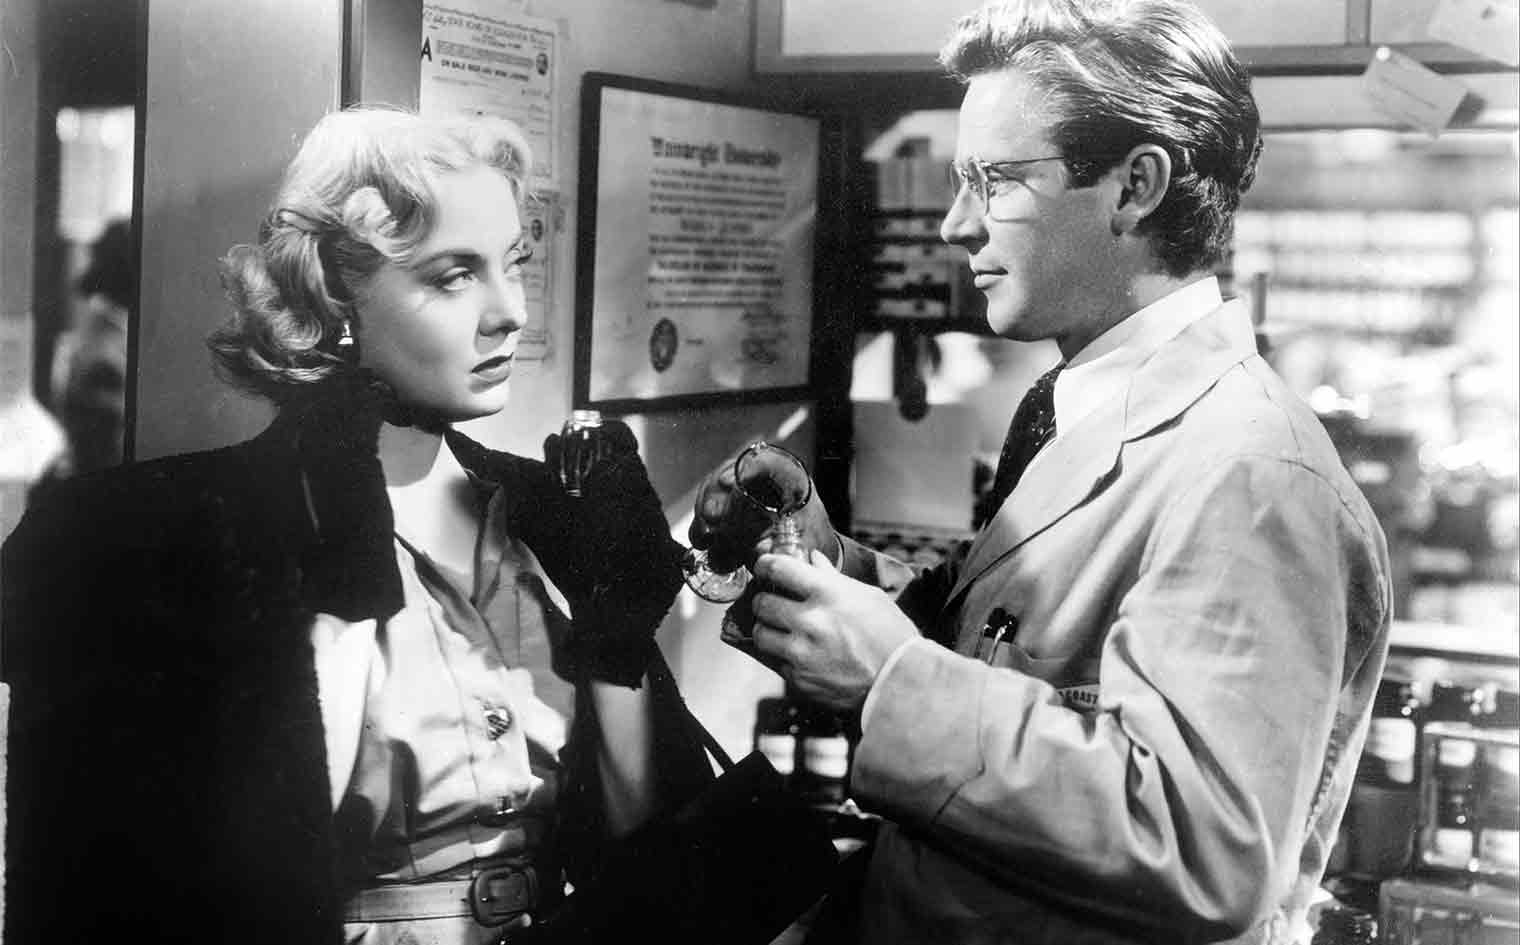 Cheatin' wife Claire Quimby (Audrey Totter) stares defiantly at Warren Quimby (Richard Basehart), her meek, bespectacled, pharmacist husband.